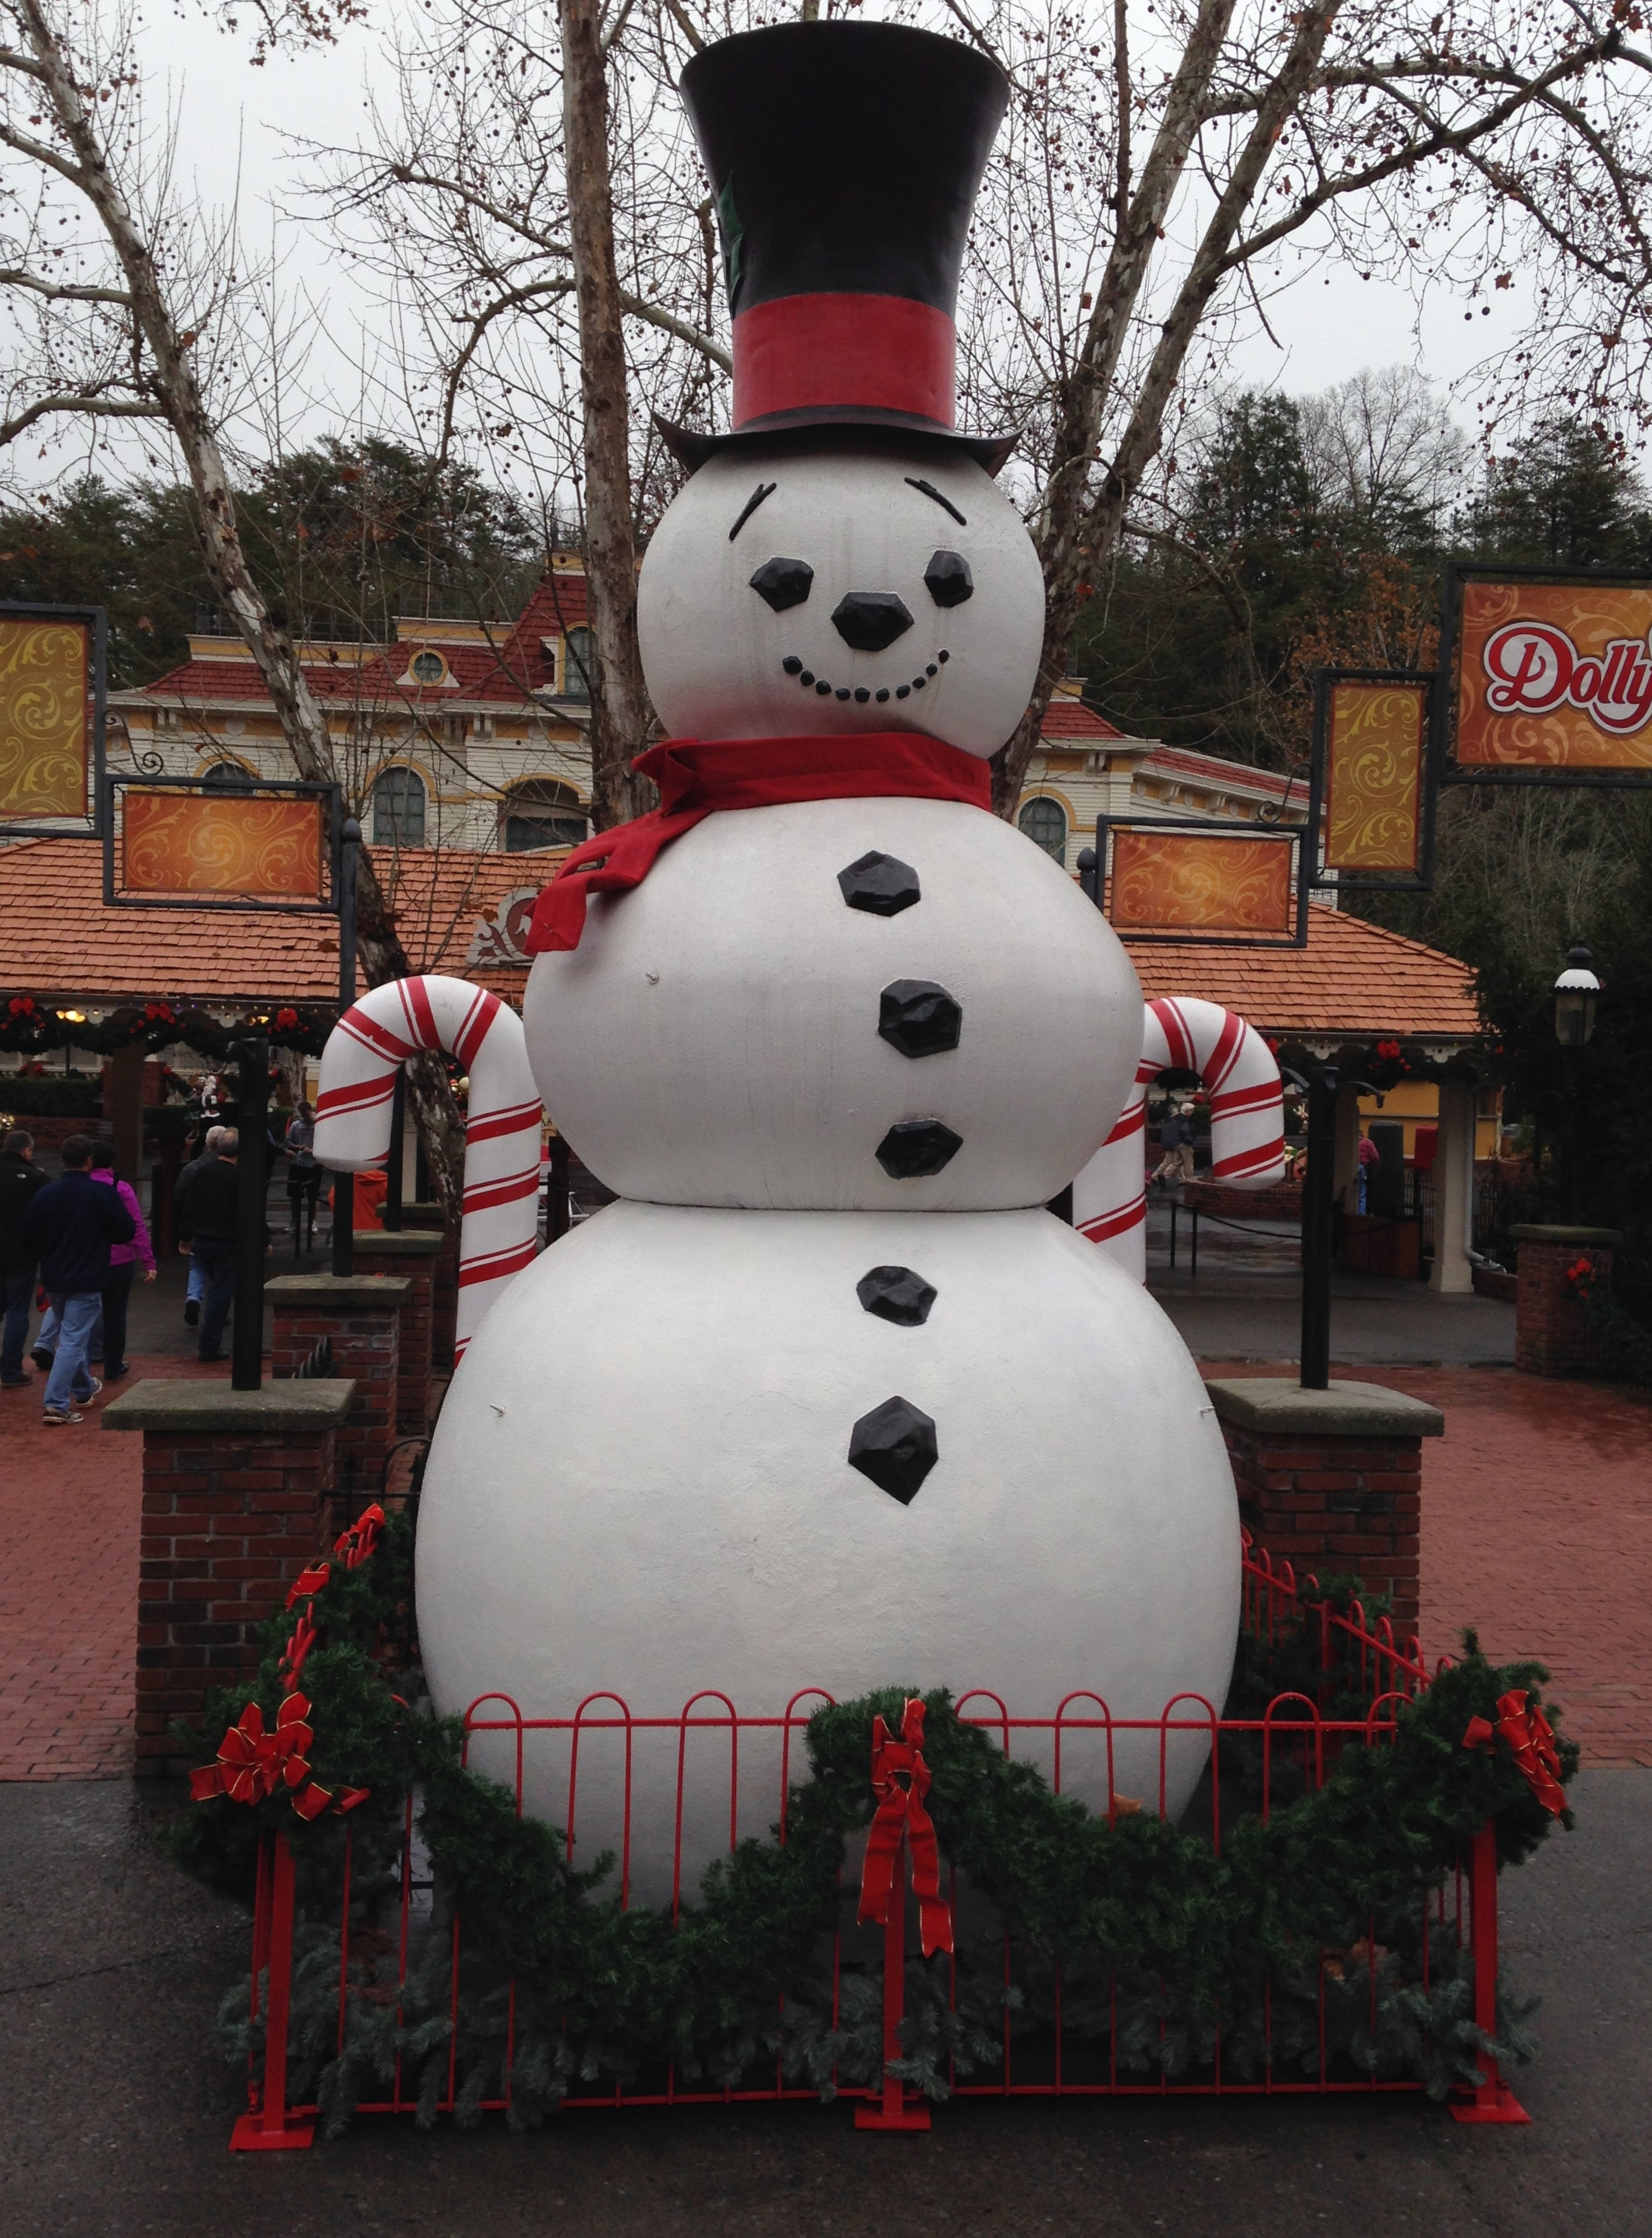 Dollywood - Snowman that greets you as you arrive - Pigeon Forge